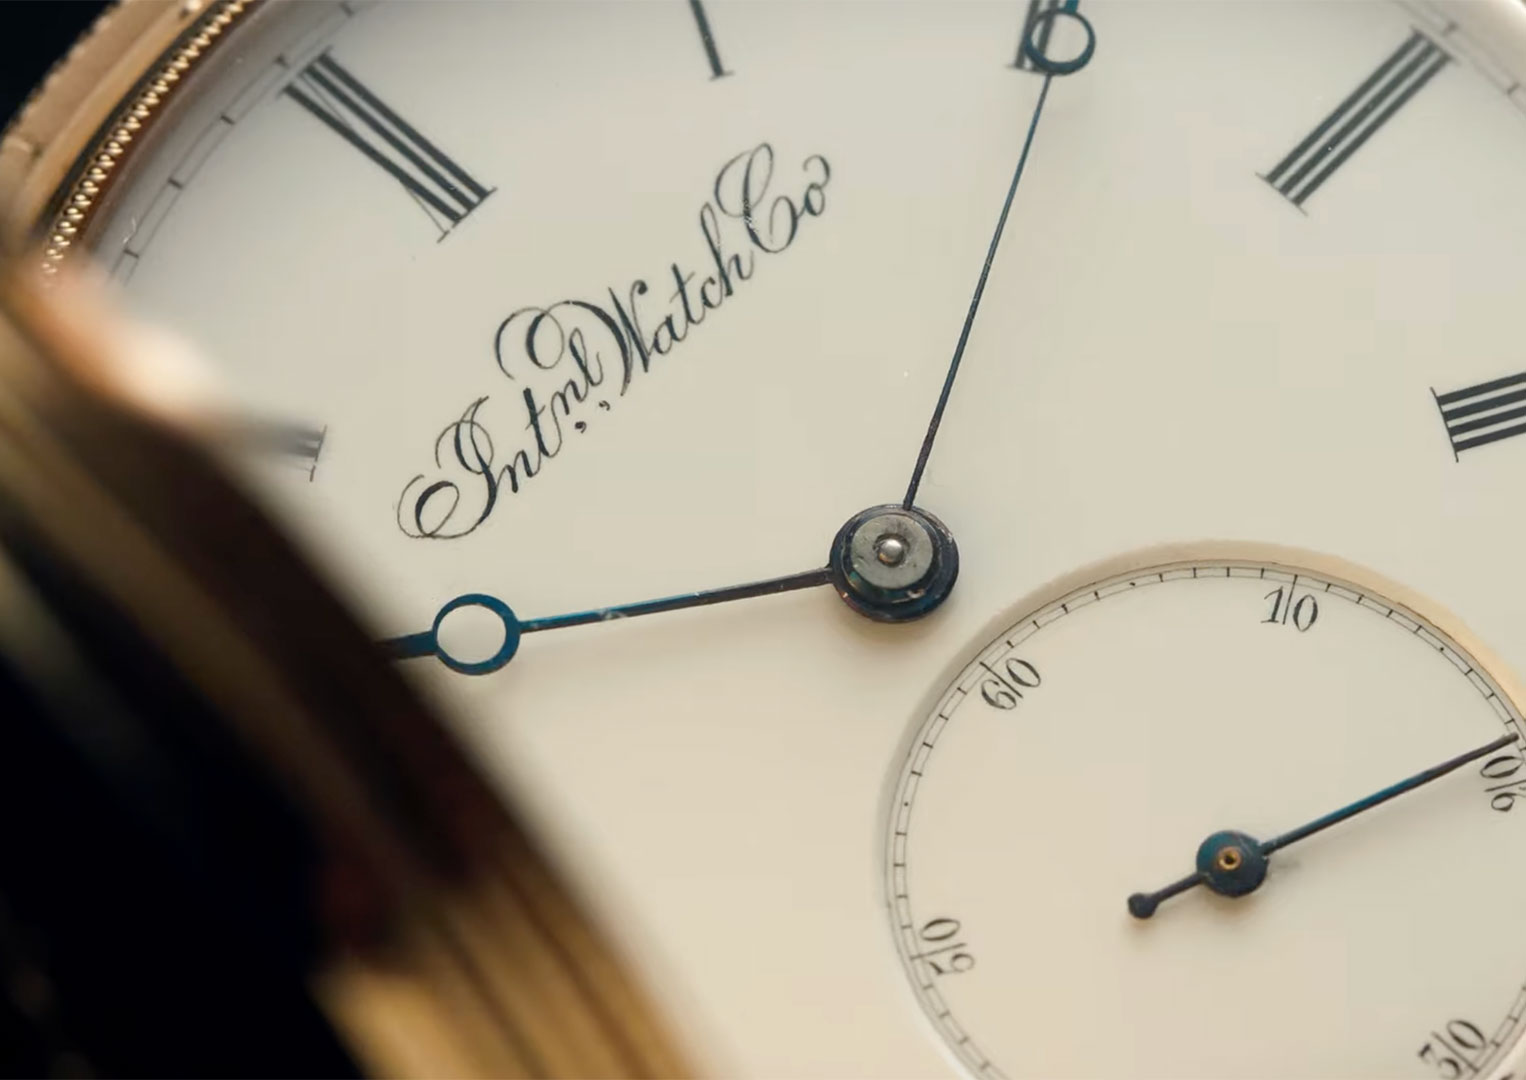 IWC was founded in 1868